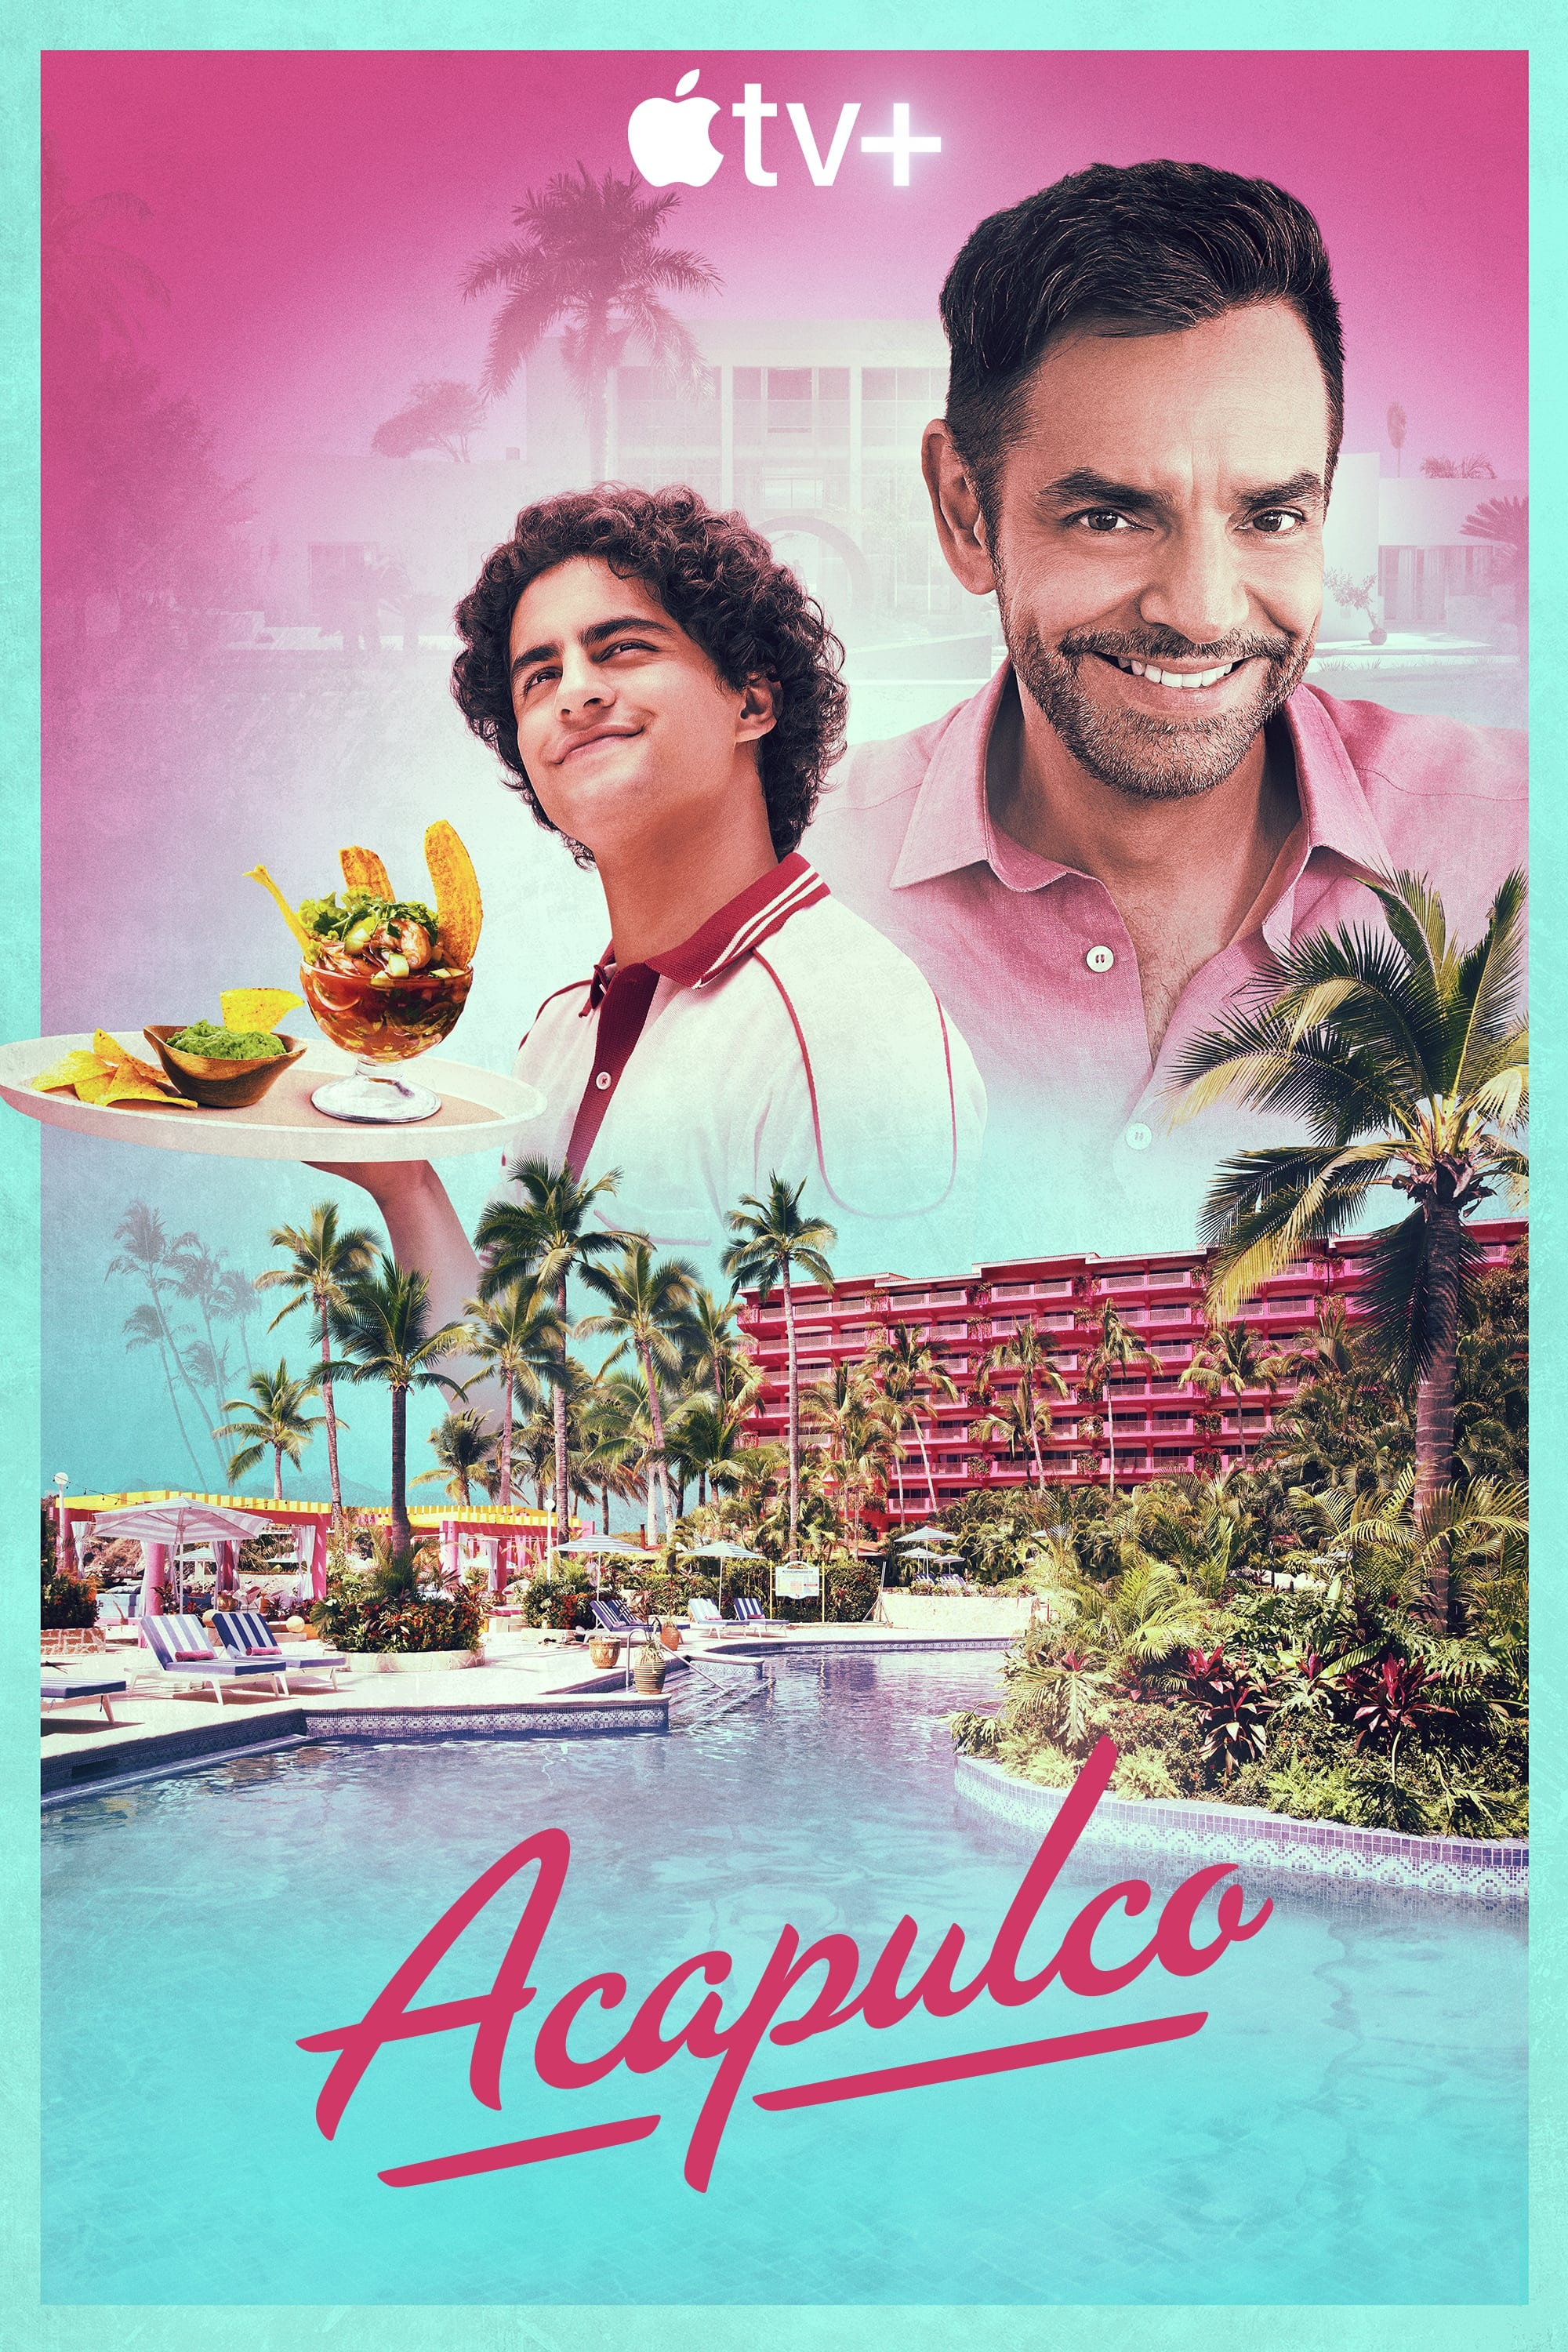 Acapulco TV Shows About 1980s